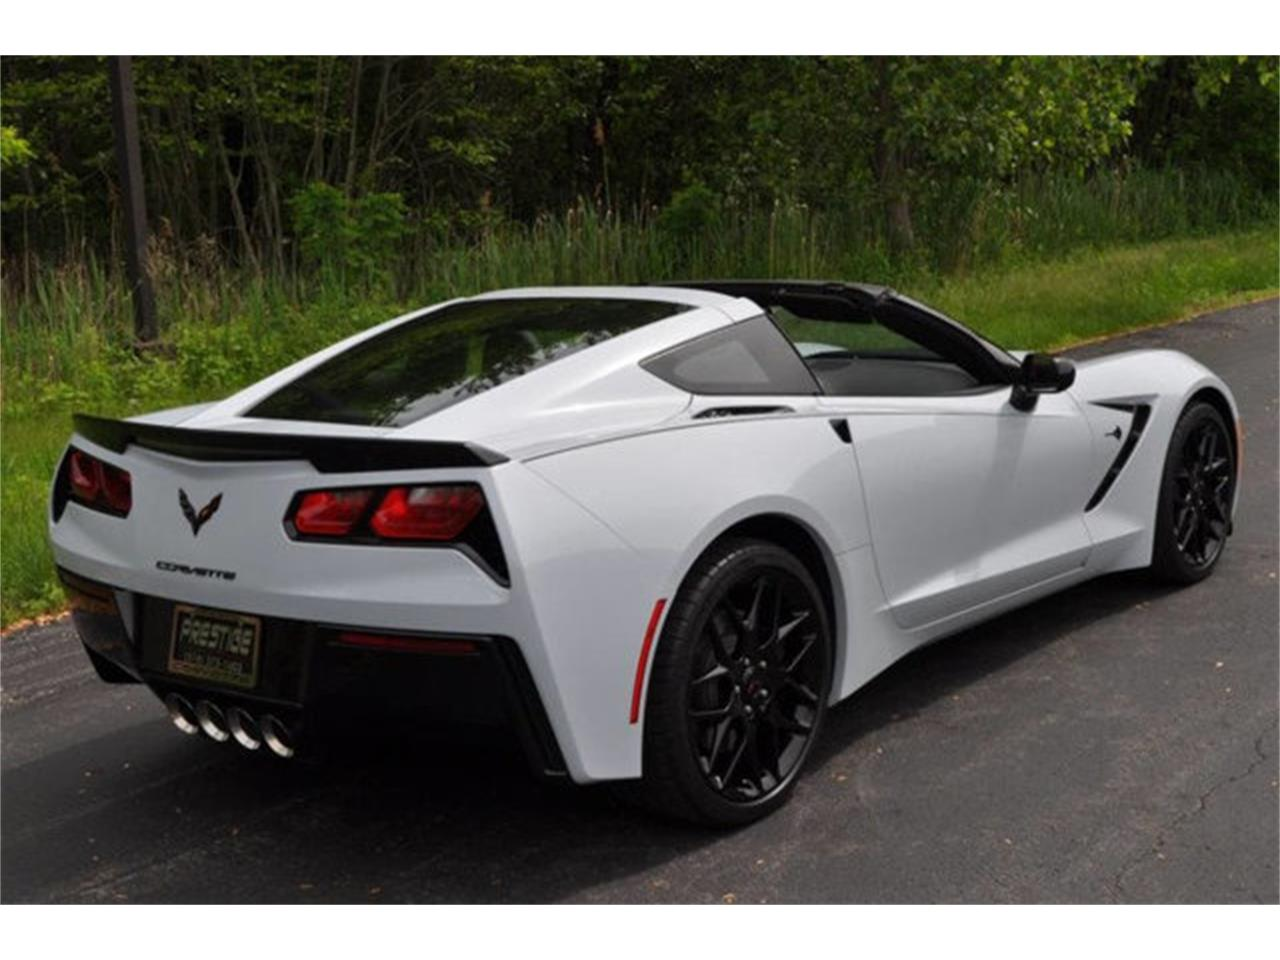 Large Picture of 2018 Chevrolet Corvette located in New York - $58,999.00 Offered by Prestige Motor Car Co. - QDOE